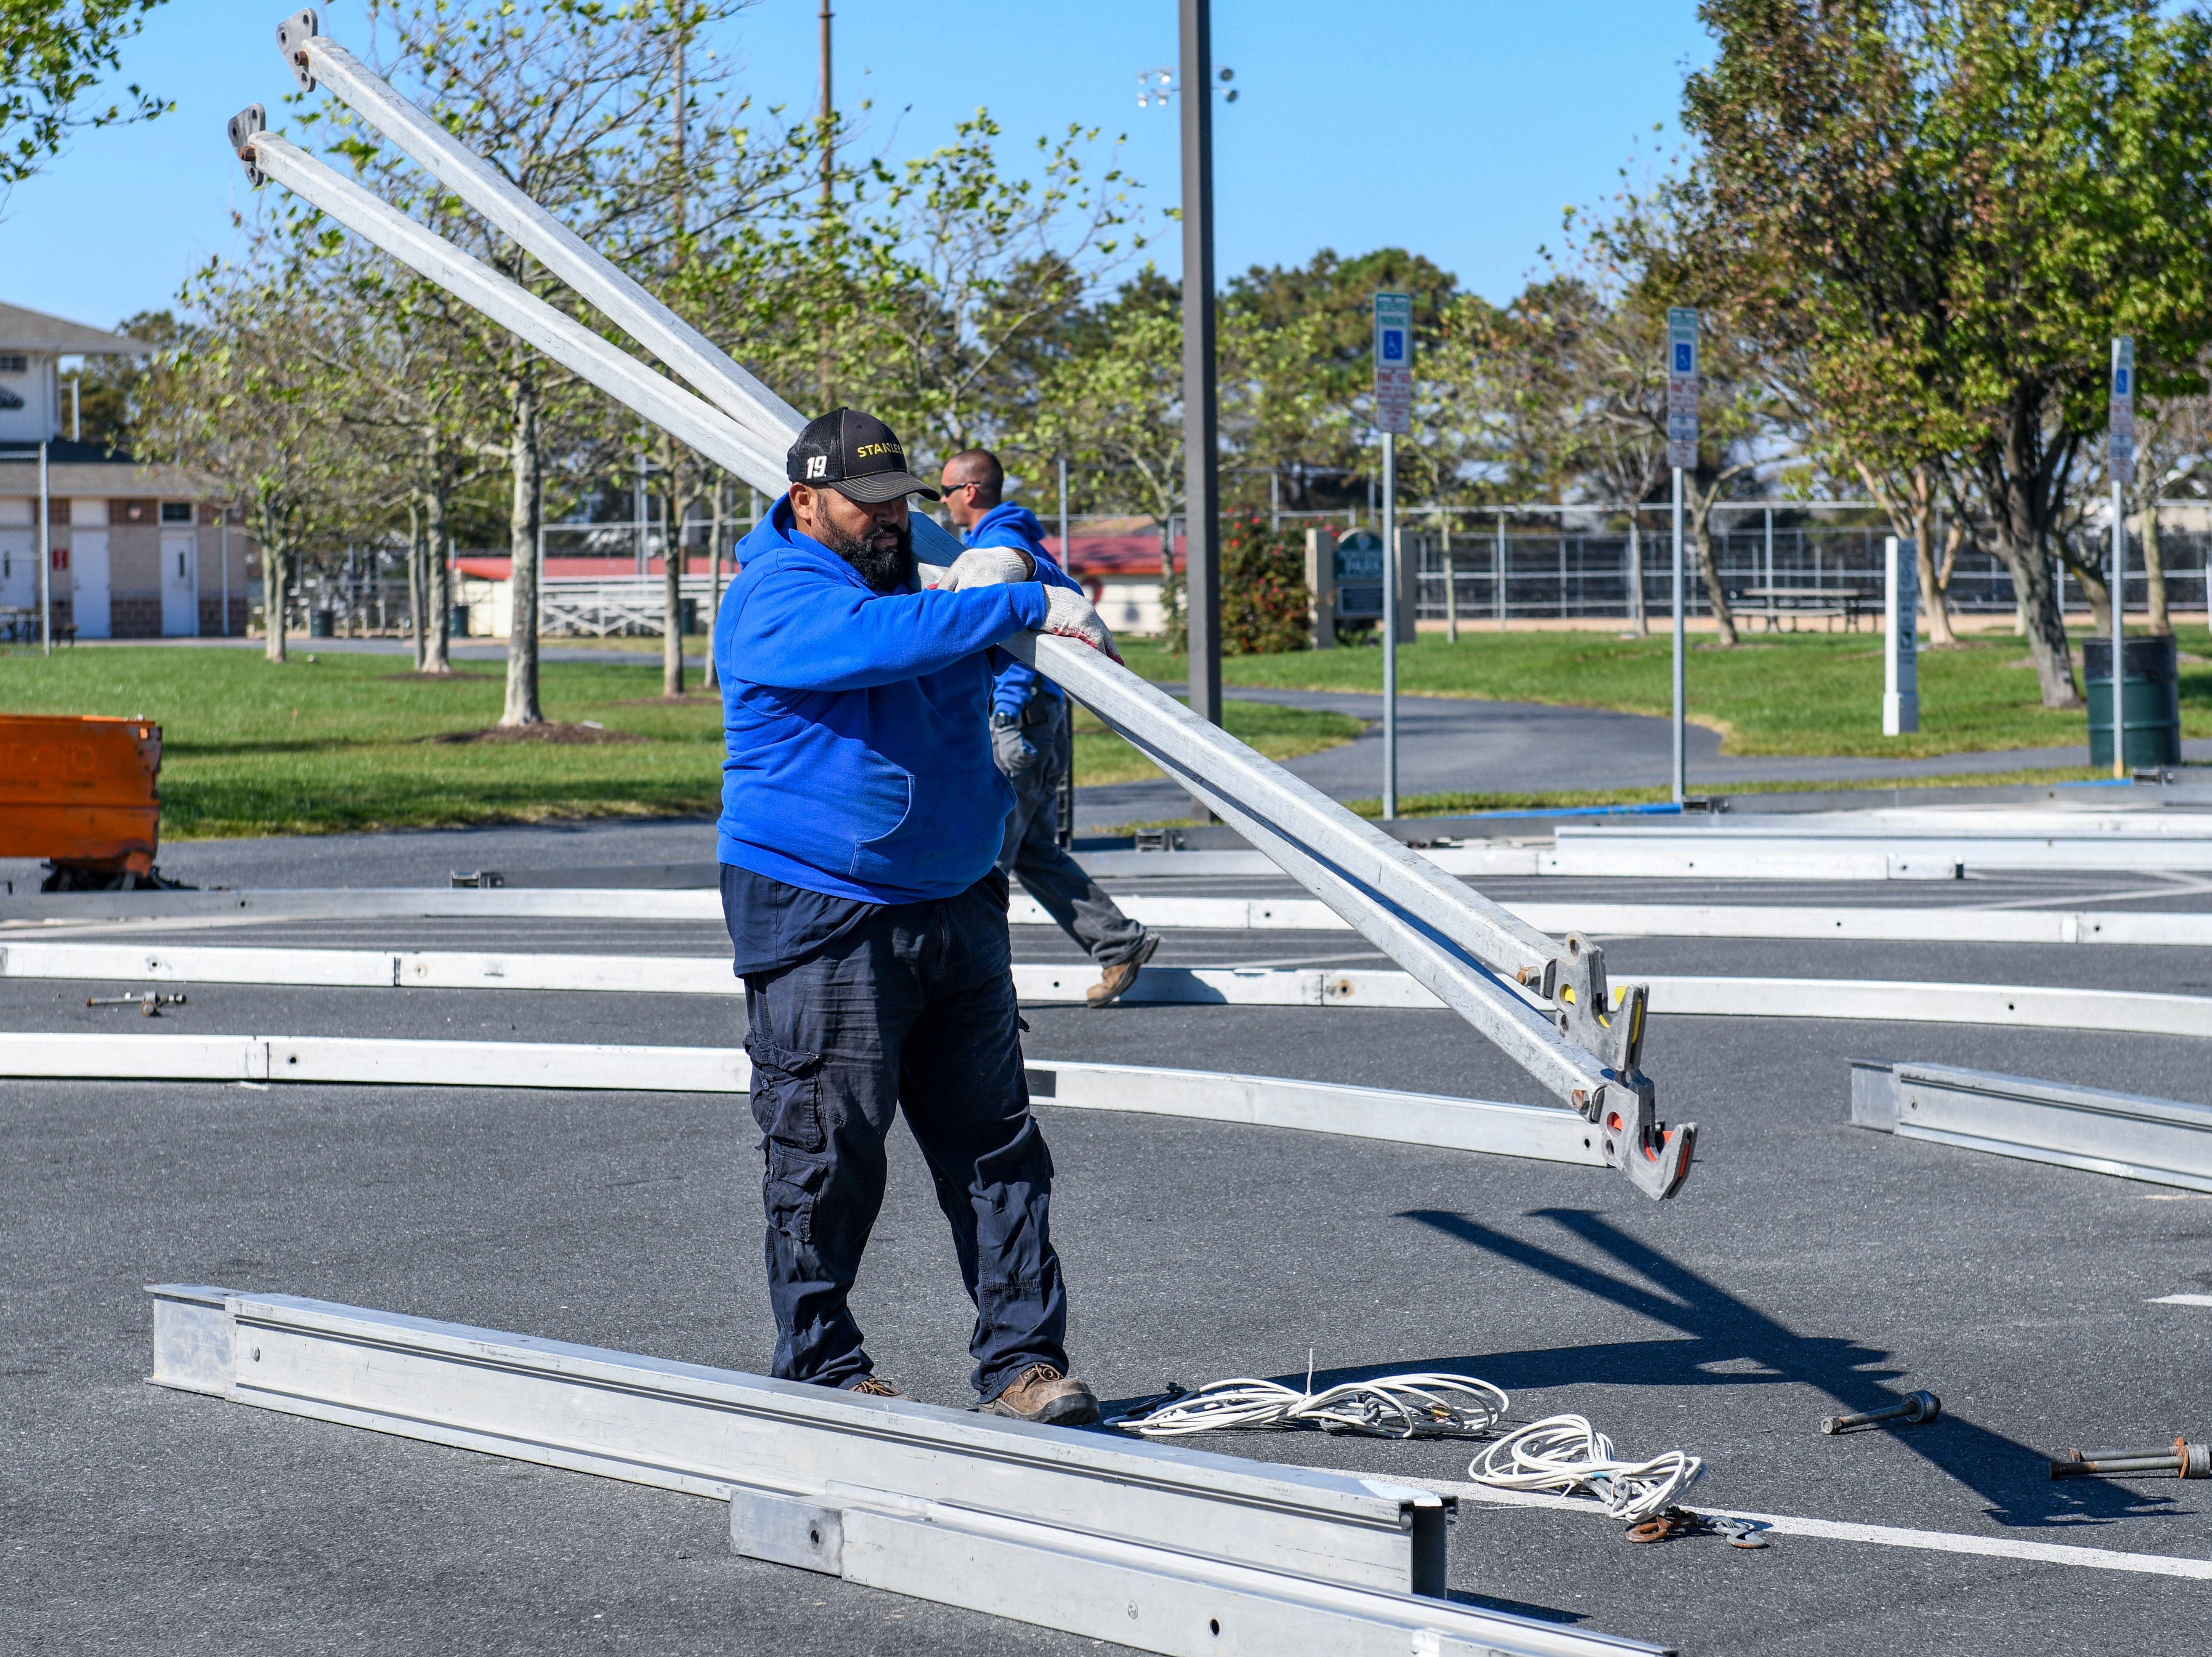 Workers set up preparations for Winterfest, which are well underway weeks before the event in Ocean City's Northside Park on Monday, Oct 22, 2018.